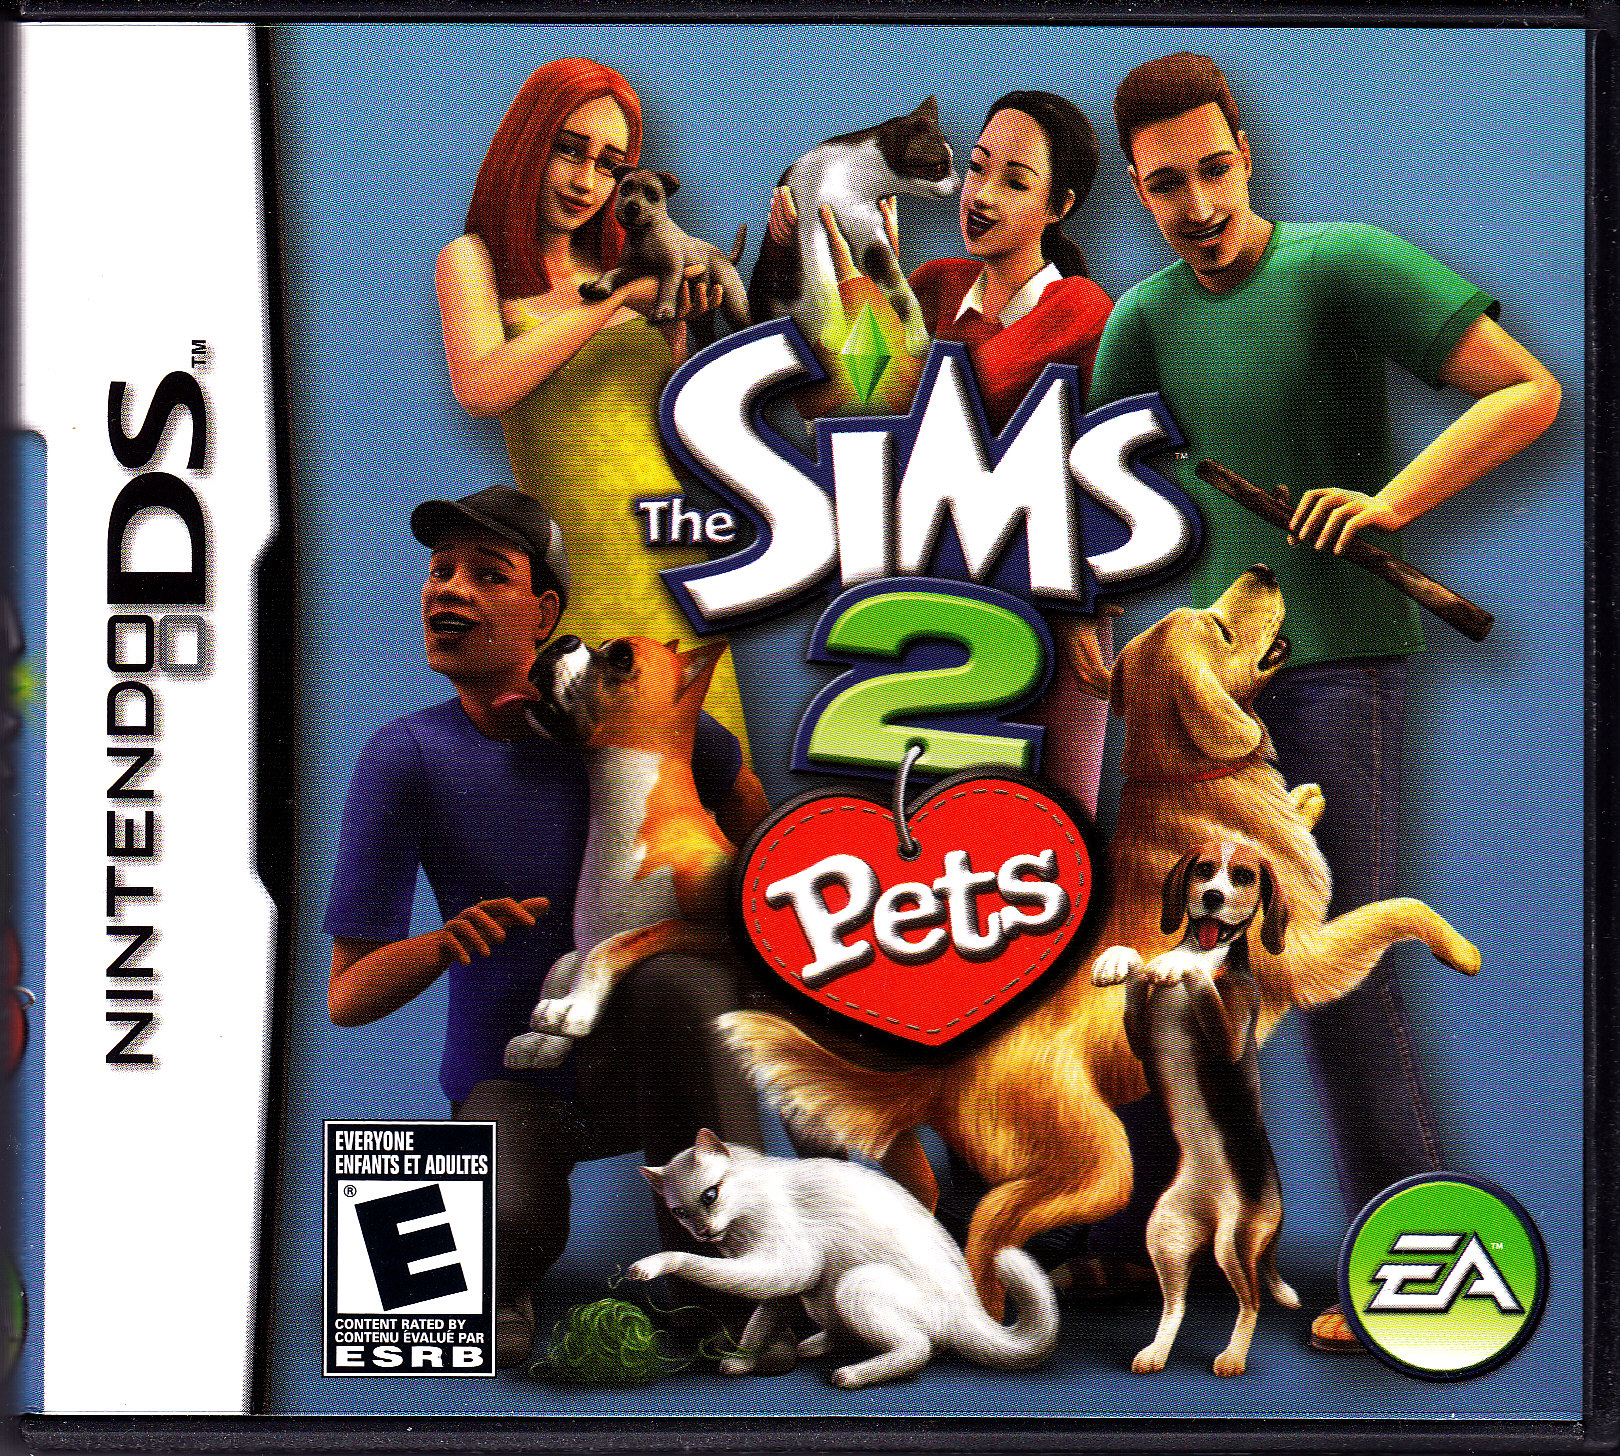 The sims 2 pets nude patch sexy streaming